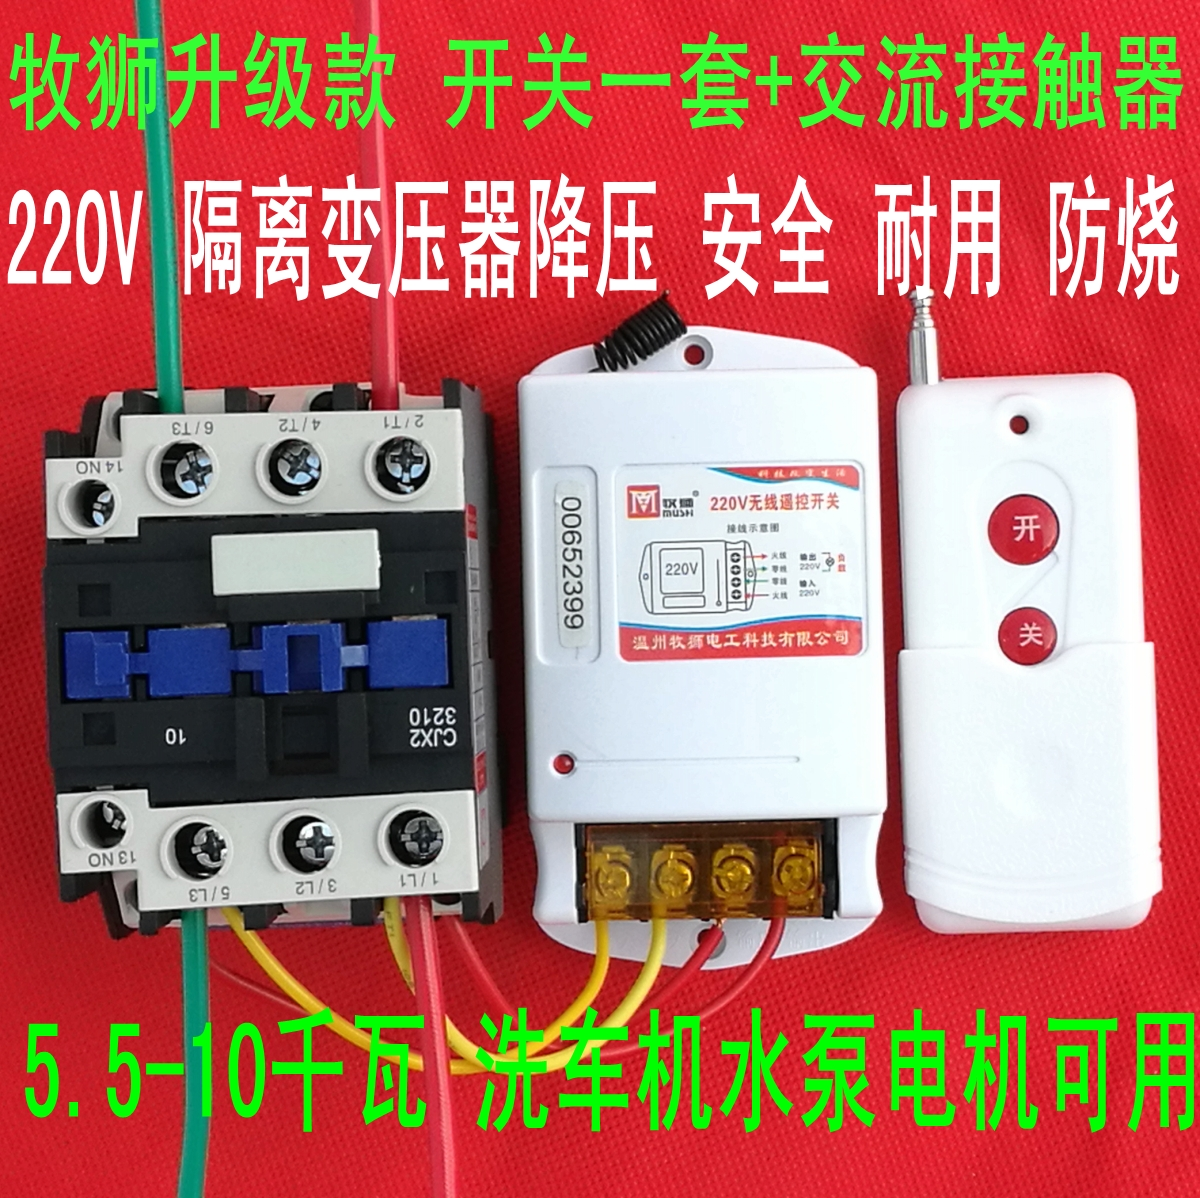 Wireless remote control switch 380V220V high power pump washing machine motor distance of 1000 meters through the wall